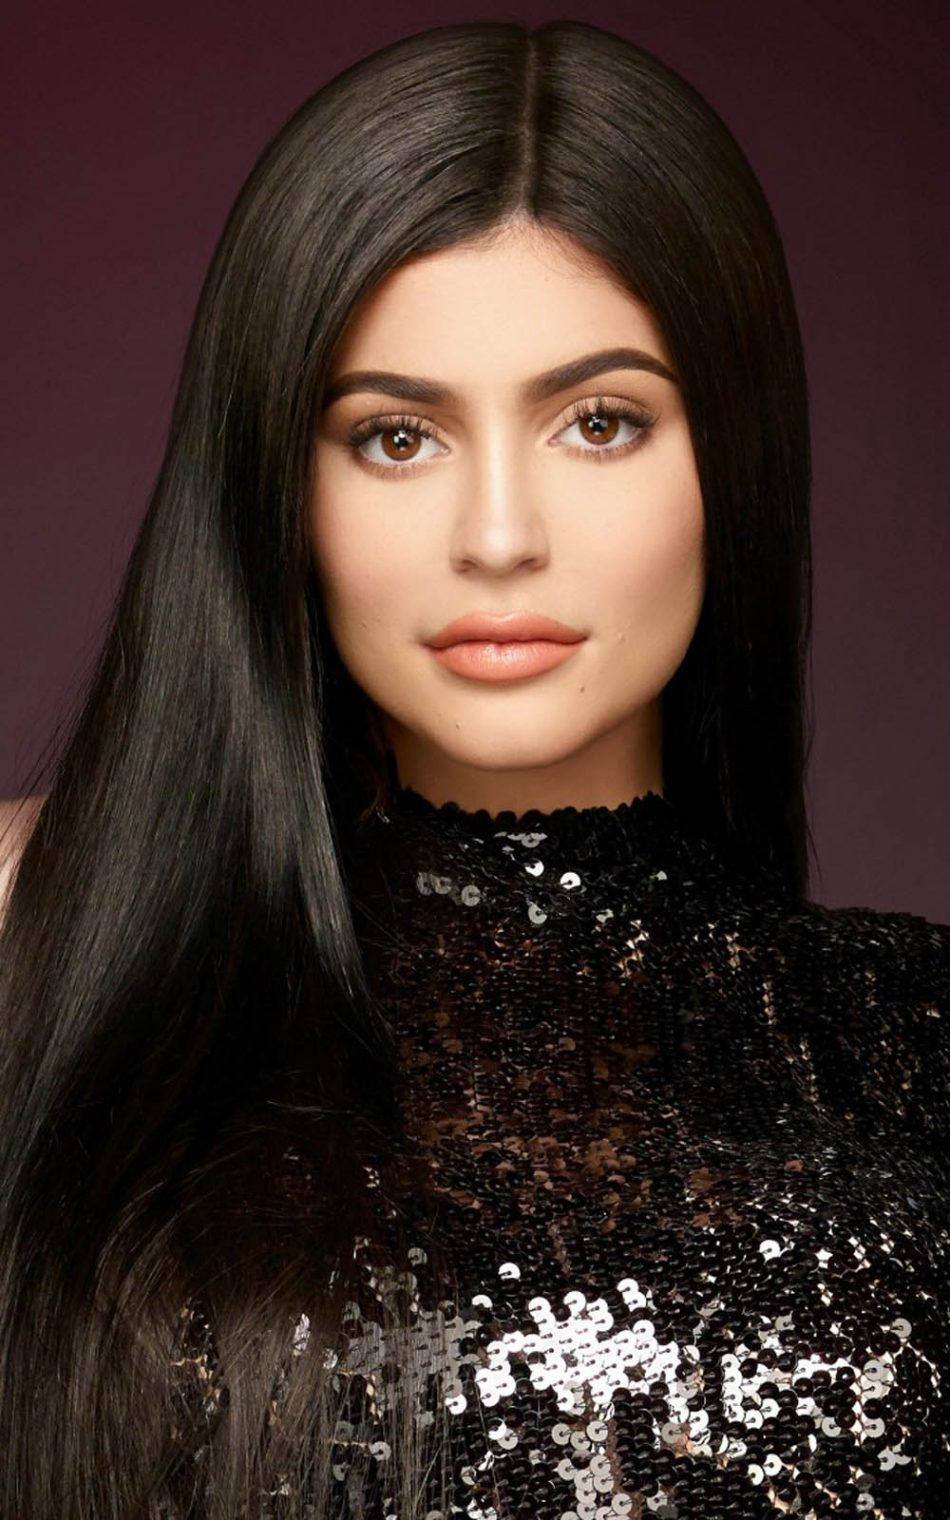 Kylie Jenner In Keeping Up With The Kardashians HD Mobile Wallpaper